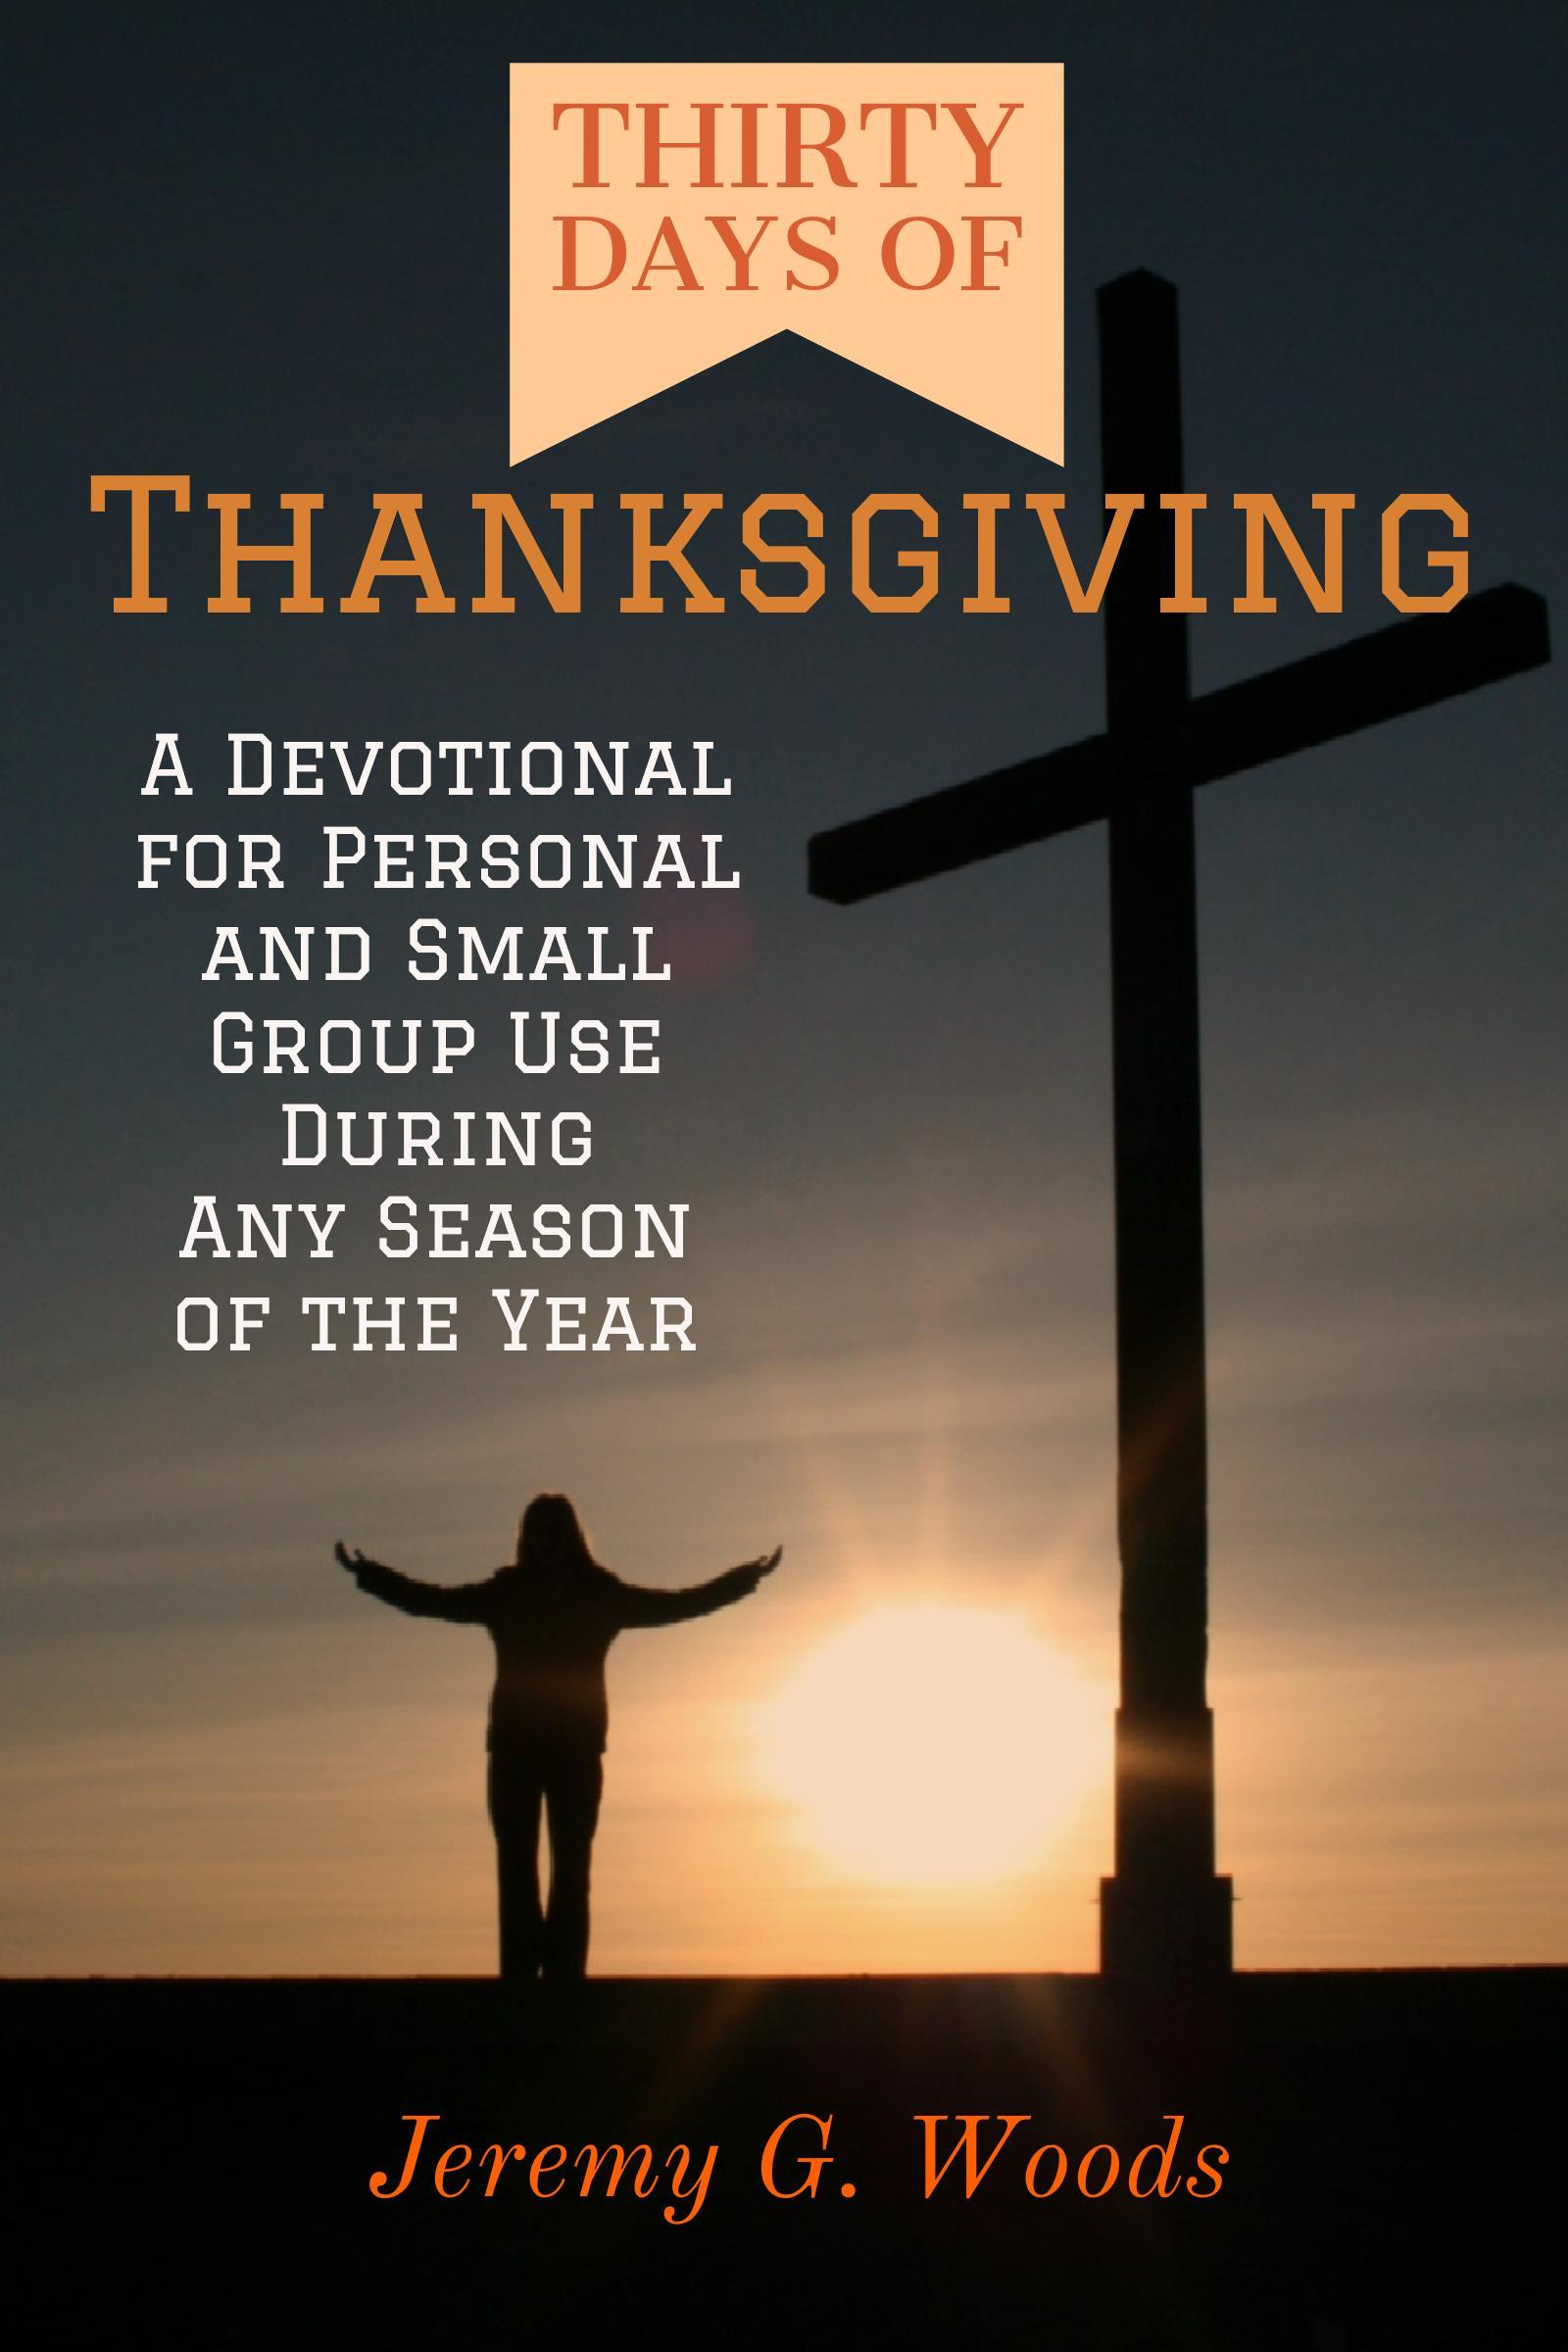 Thirty Days of Thanksgiving:  A Devotional for Personal and Small Group Use During Any Season of the Year